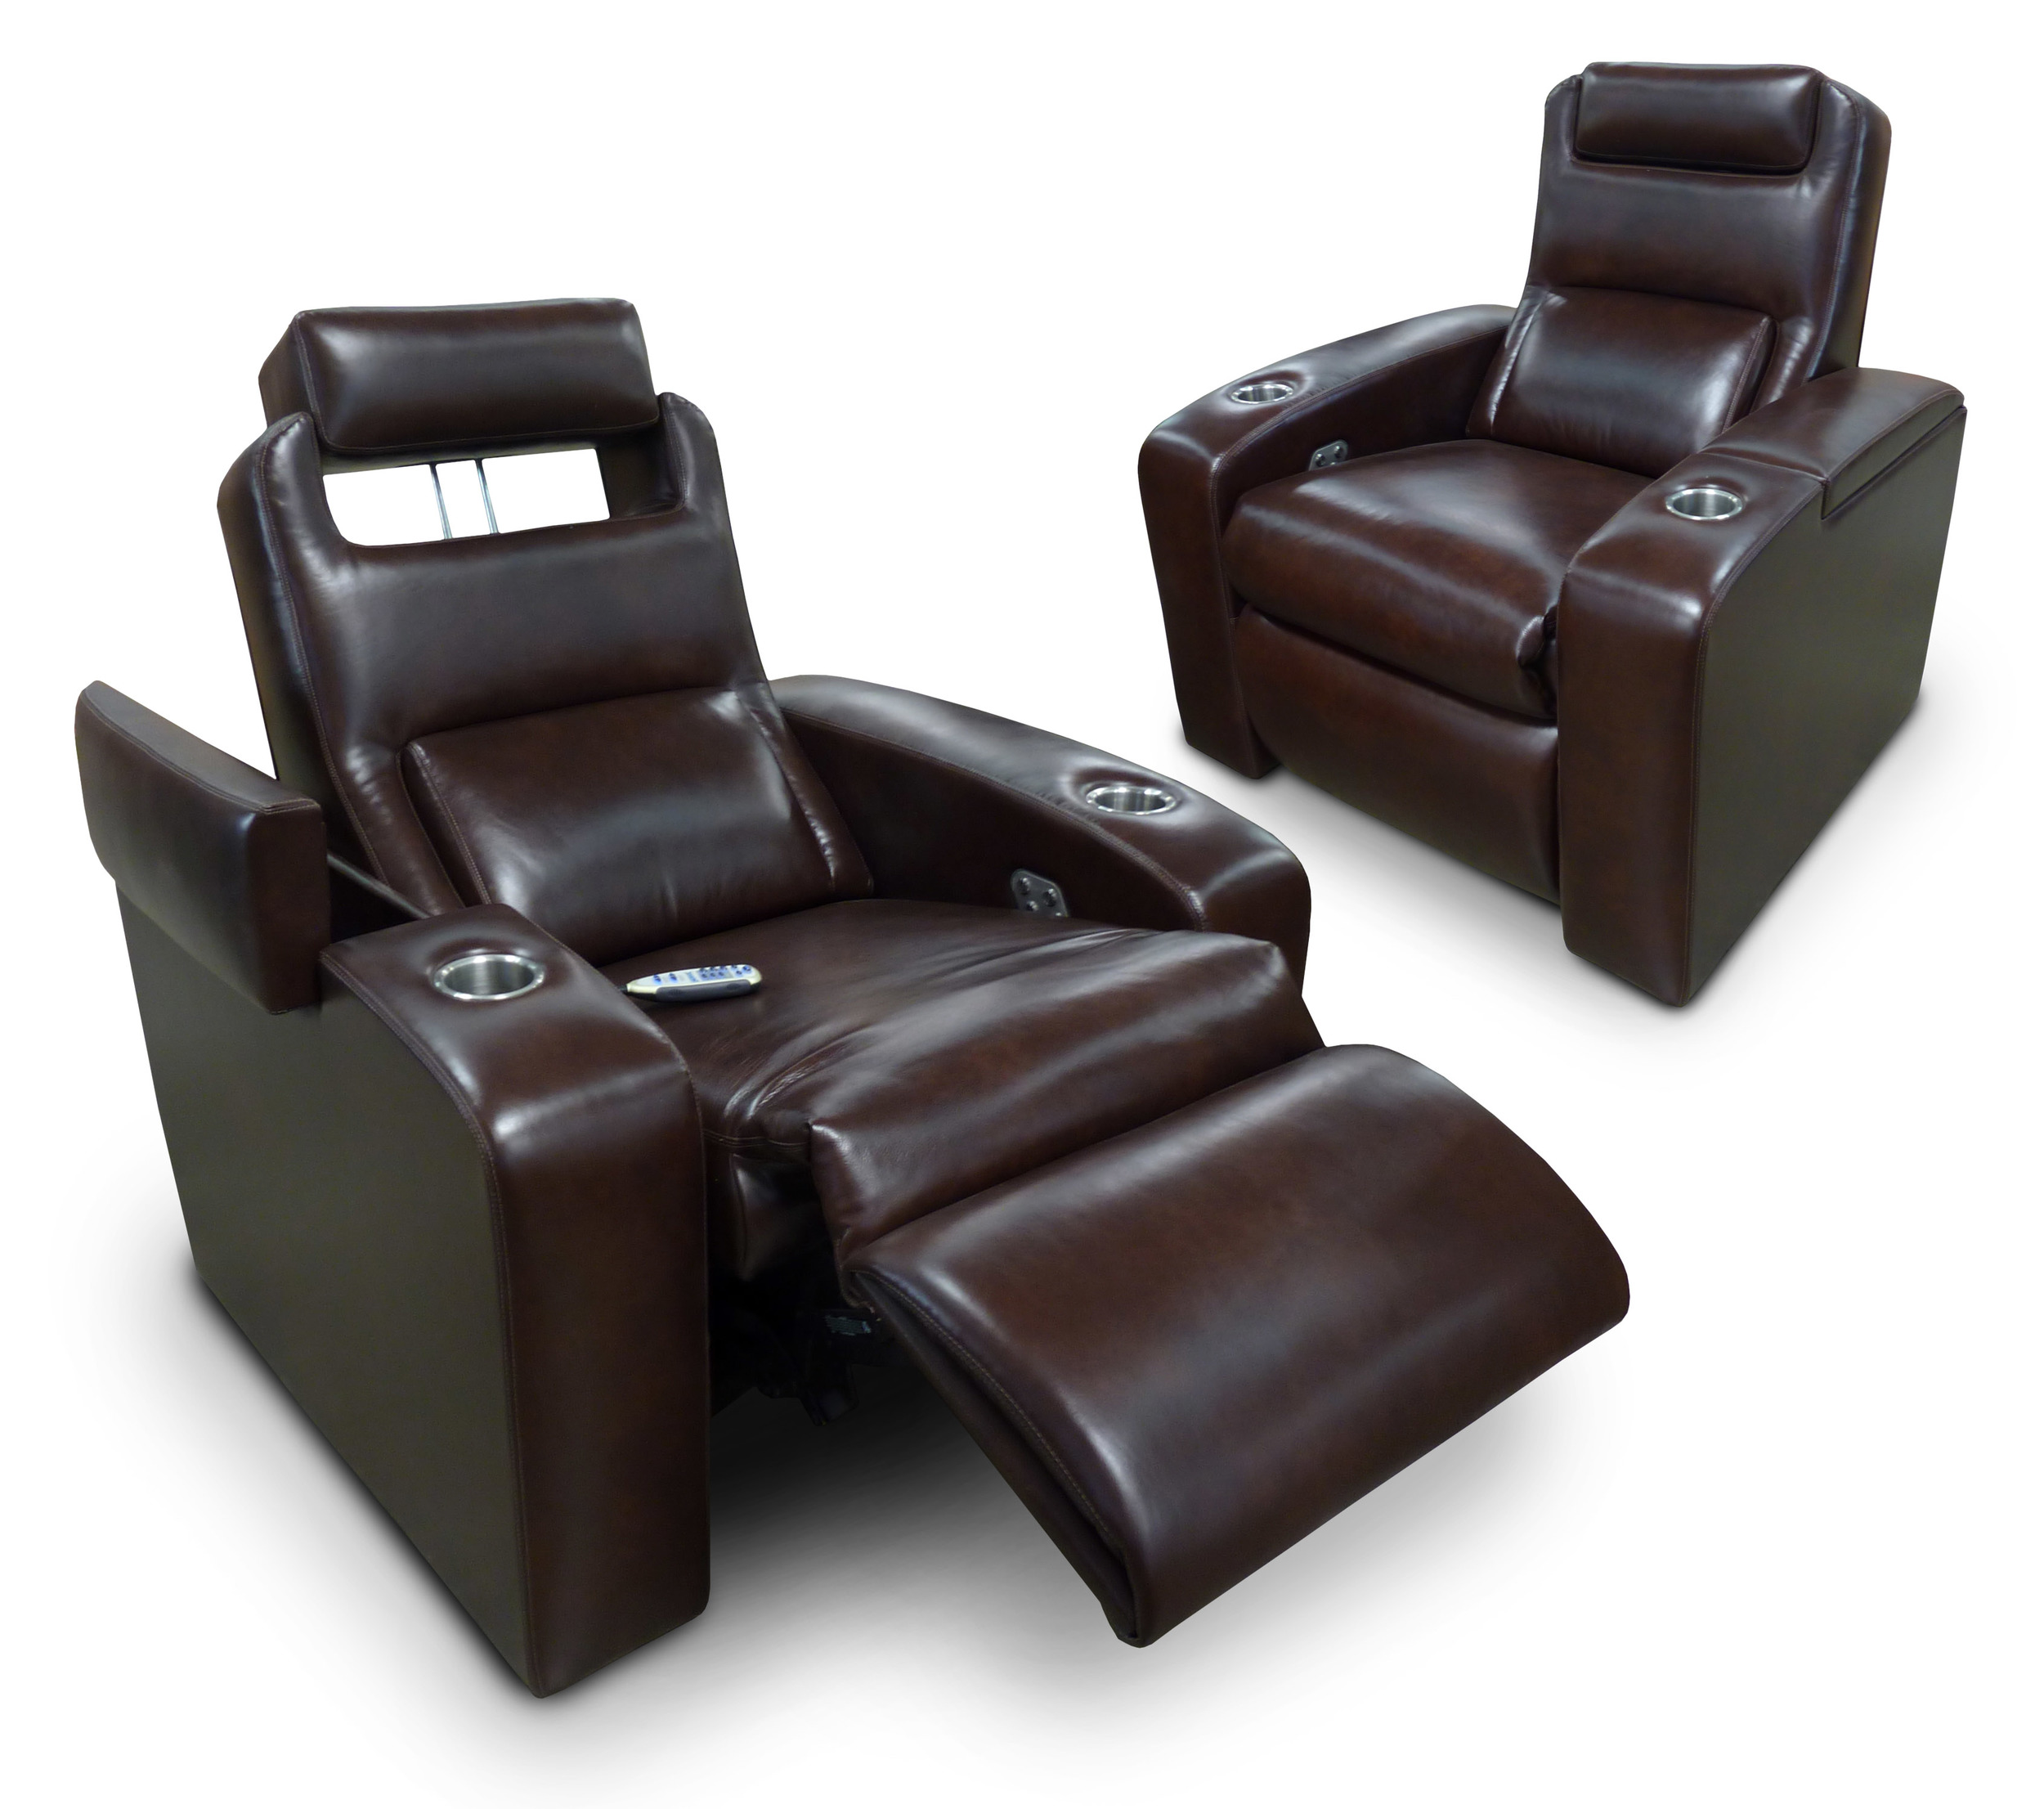 Motorized: Adjustable Head Rest & Lumbar Support; Storage & Chaise Footrest. Model: Madison